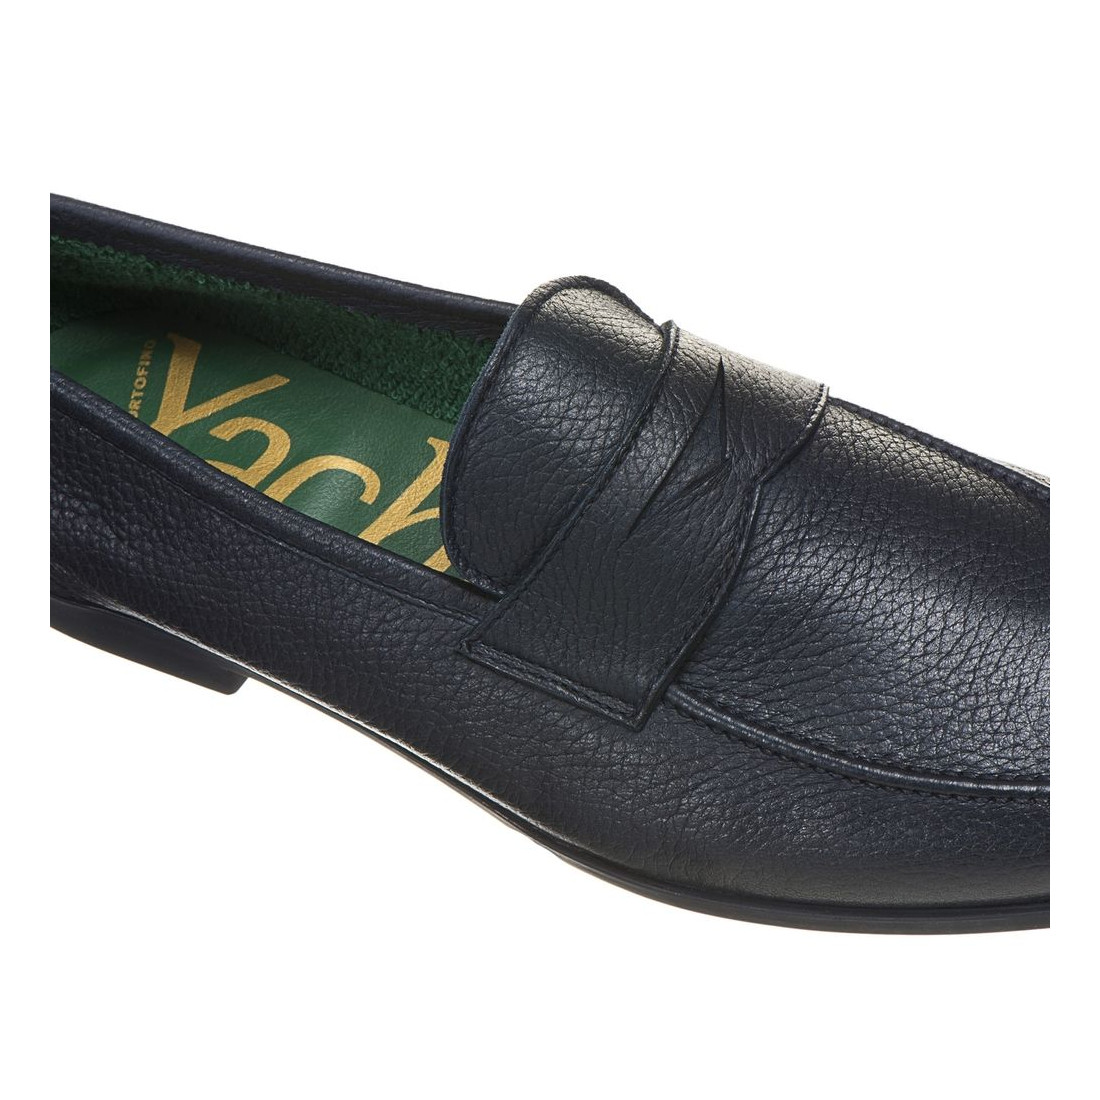 Fratelli Rossetti Yacht Loafers